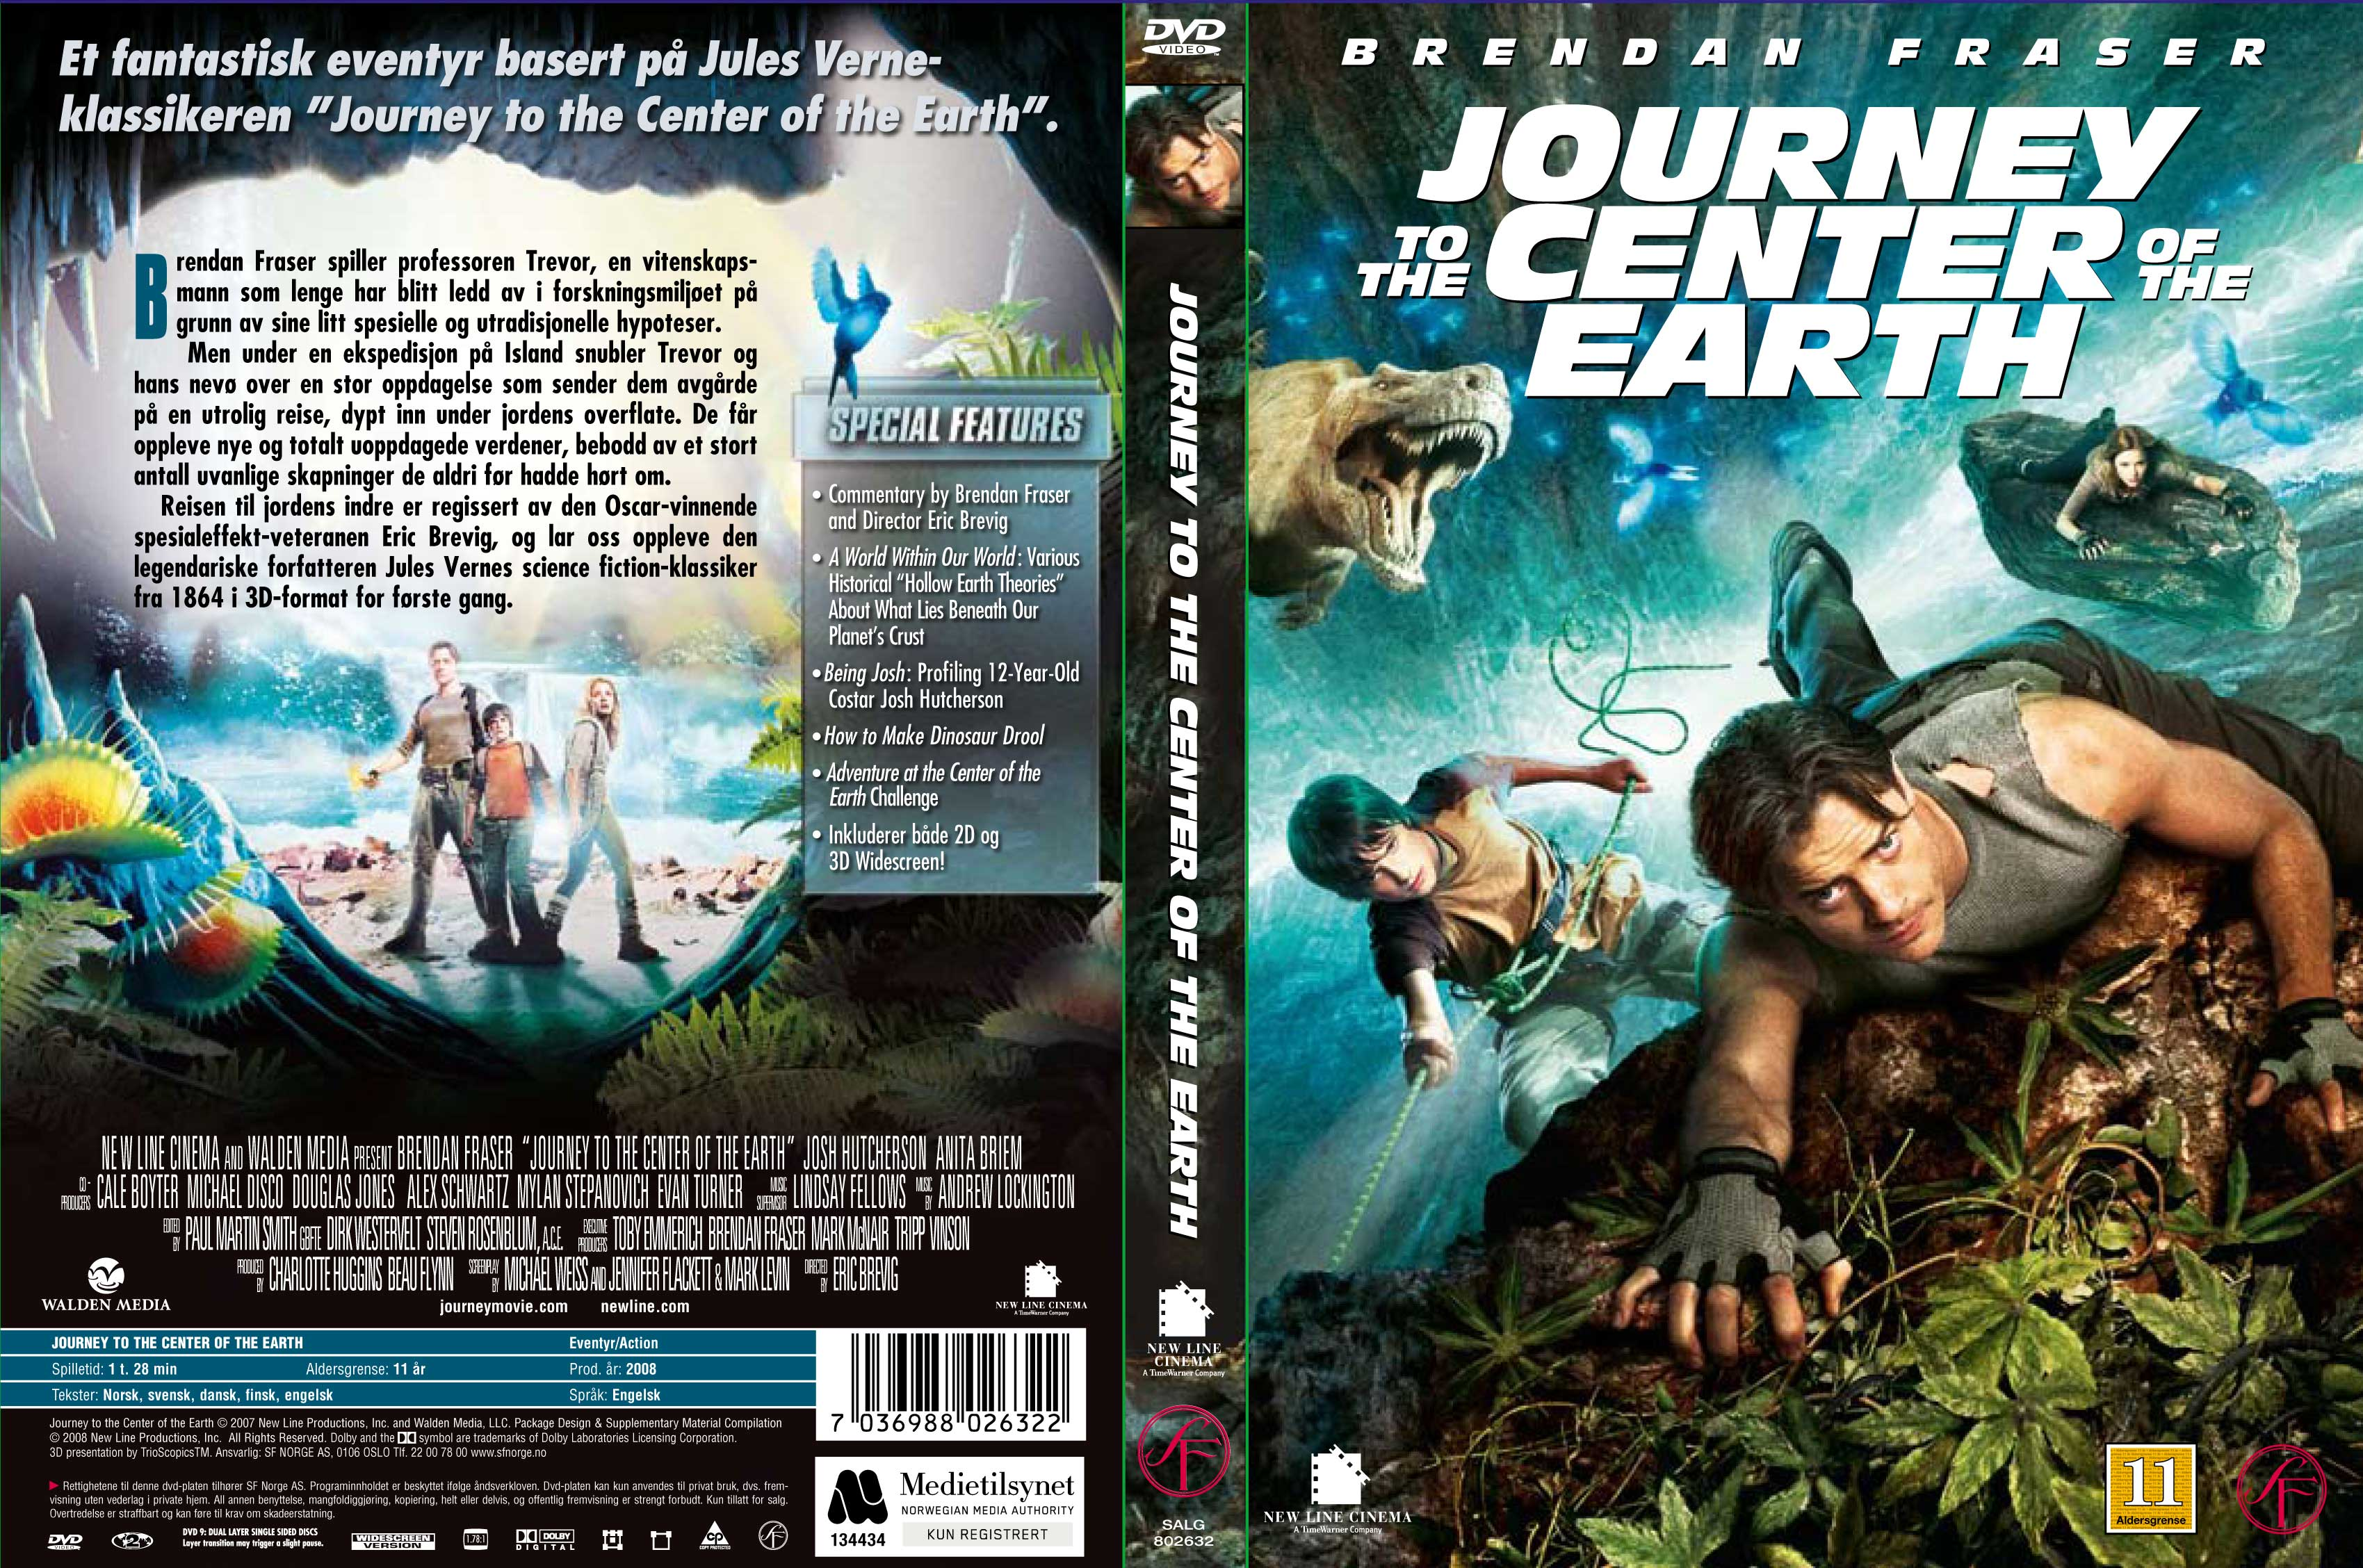 the adventures of three men to the depths of the earth in a journey to the center of the earth by ju An edinburgh professor and assorted colleagues follow an explorer's trail down an extinct icelandic volcano to the earth's center journey to the center of the earth.